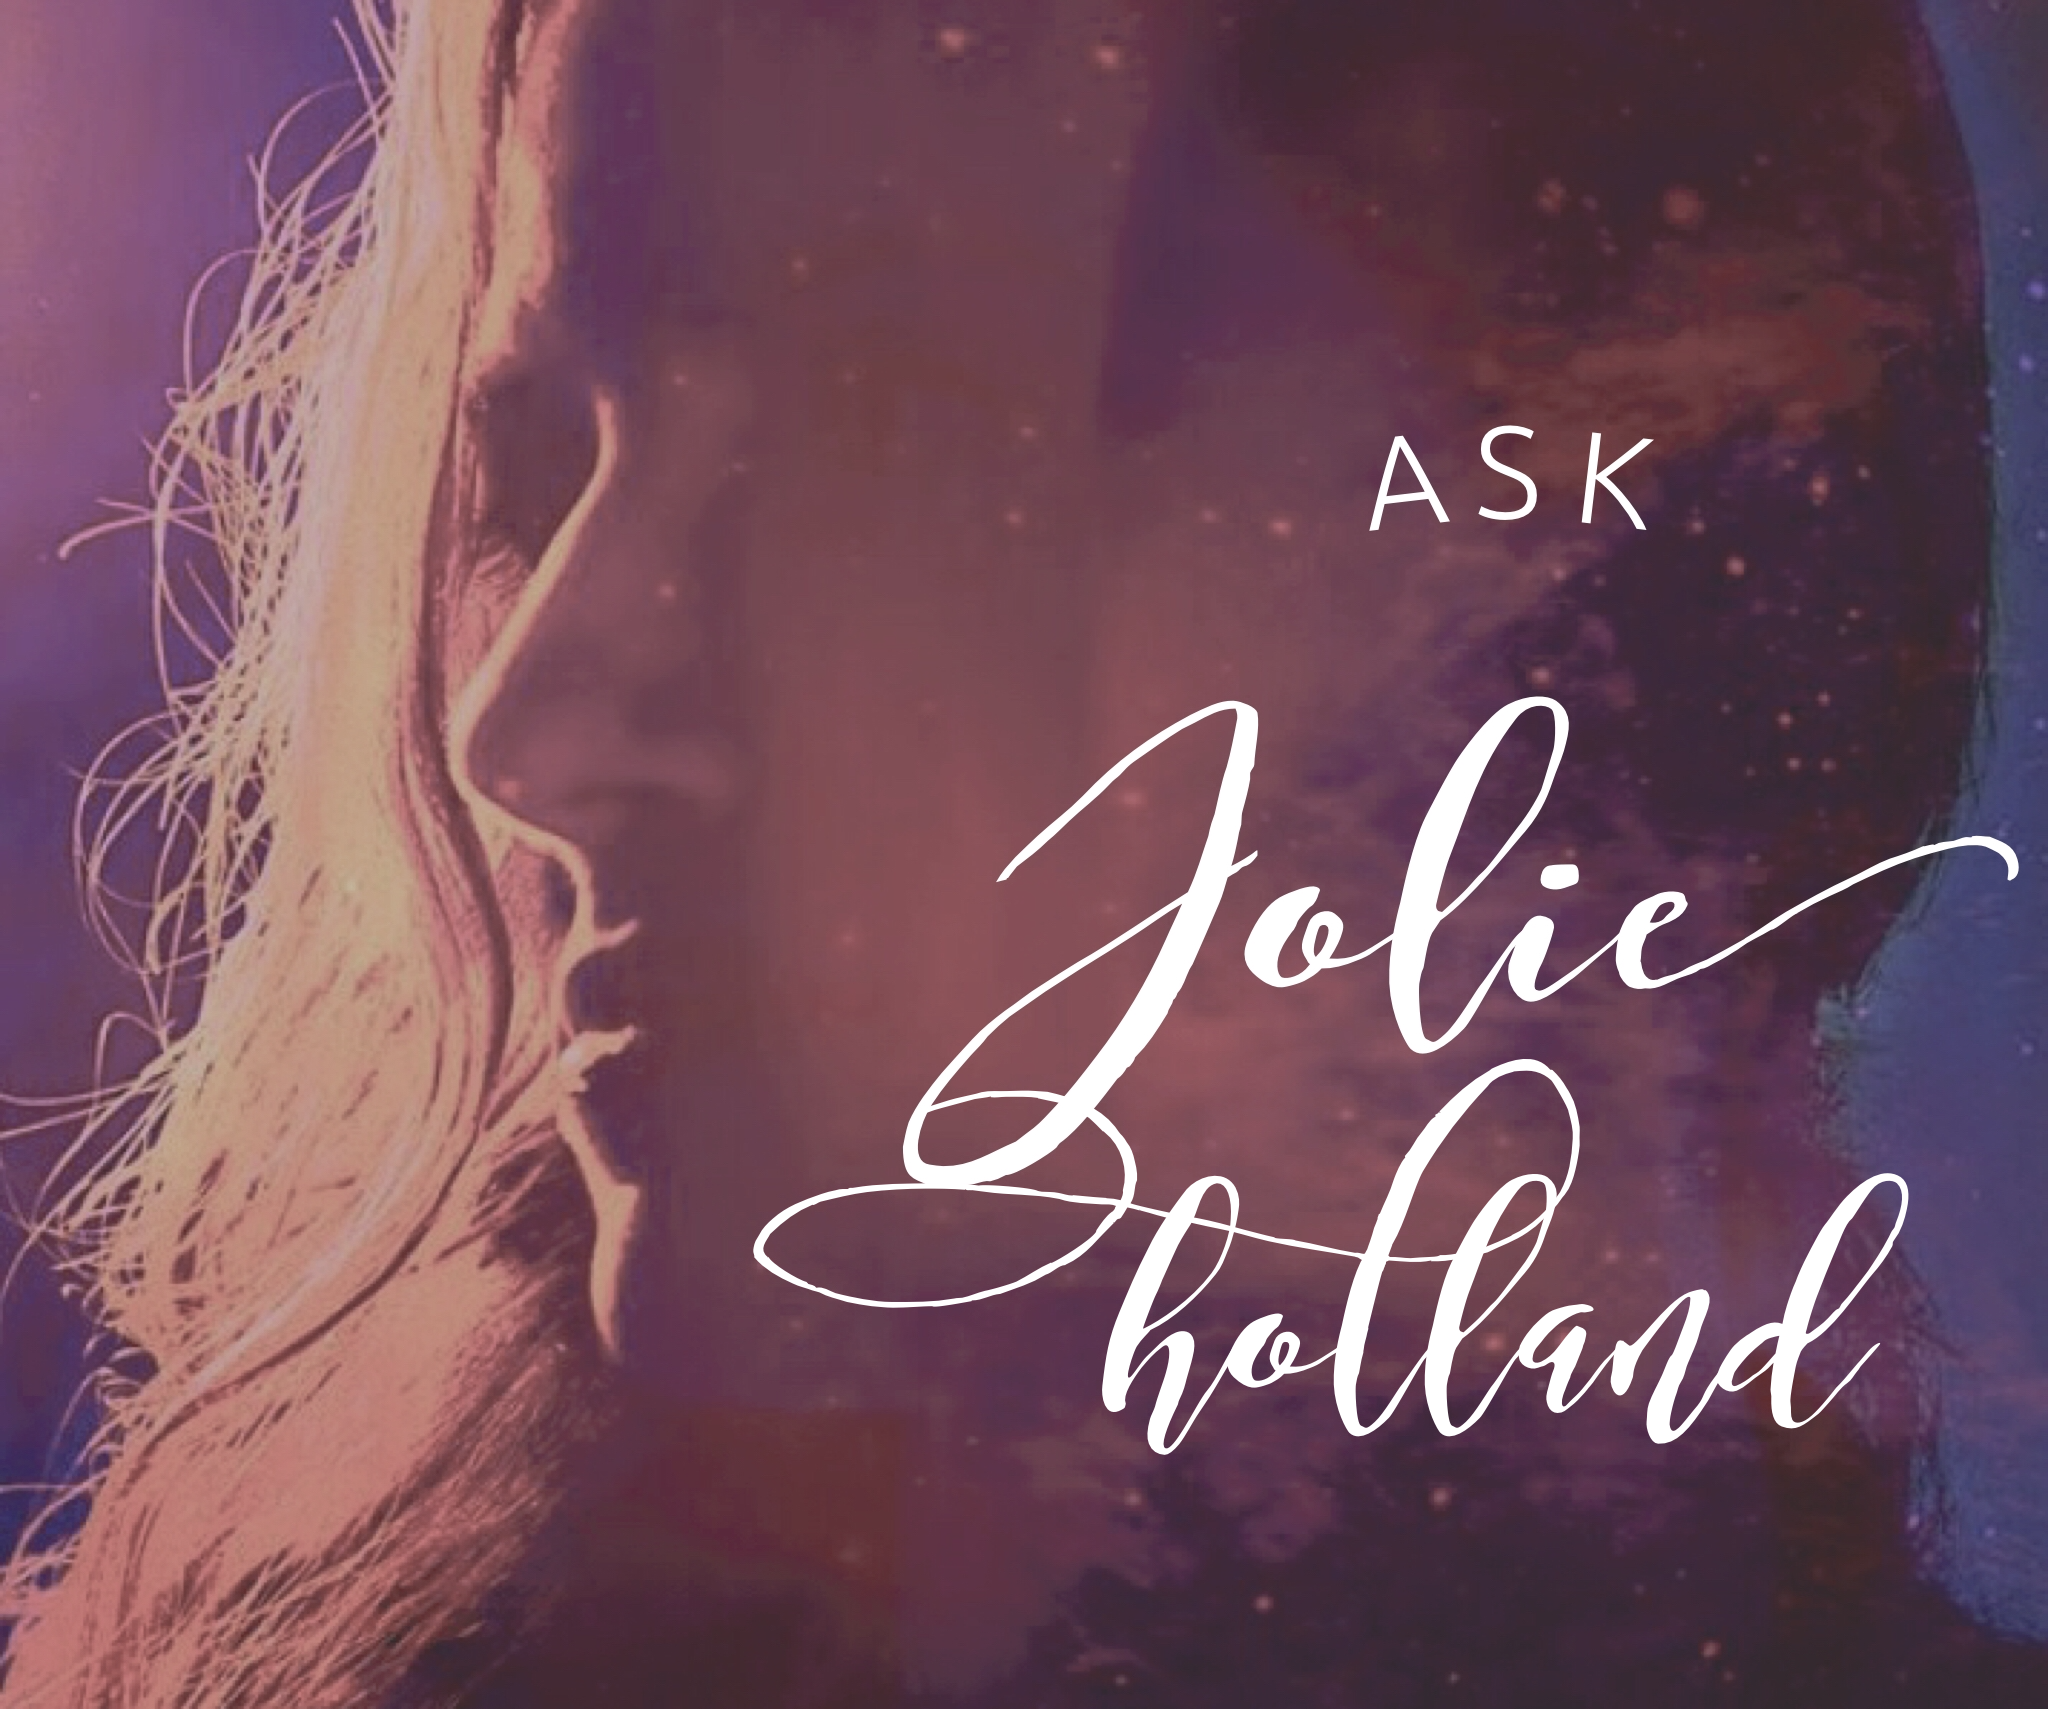 Ask Jolie Holland: Bearing the Brunt of Ignorance